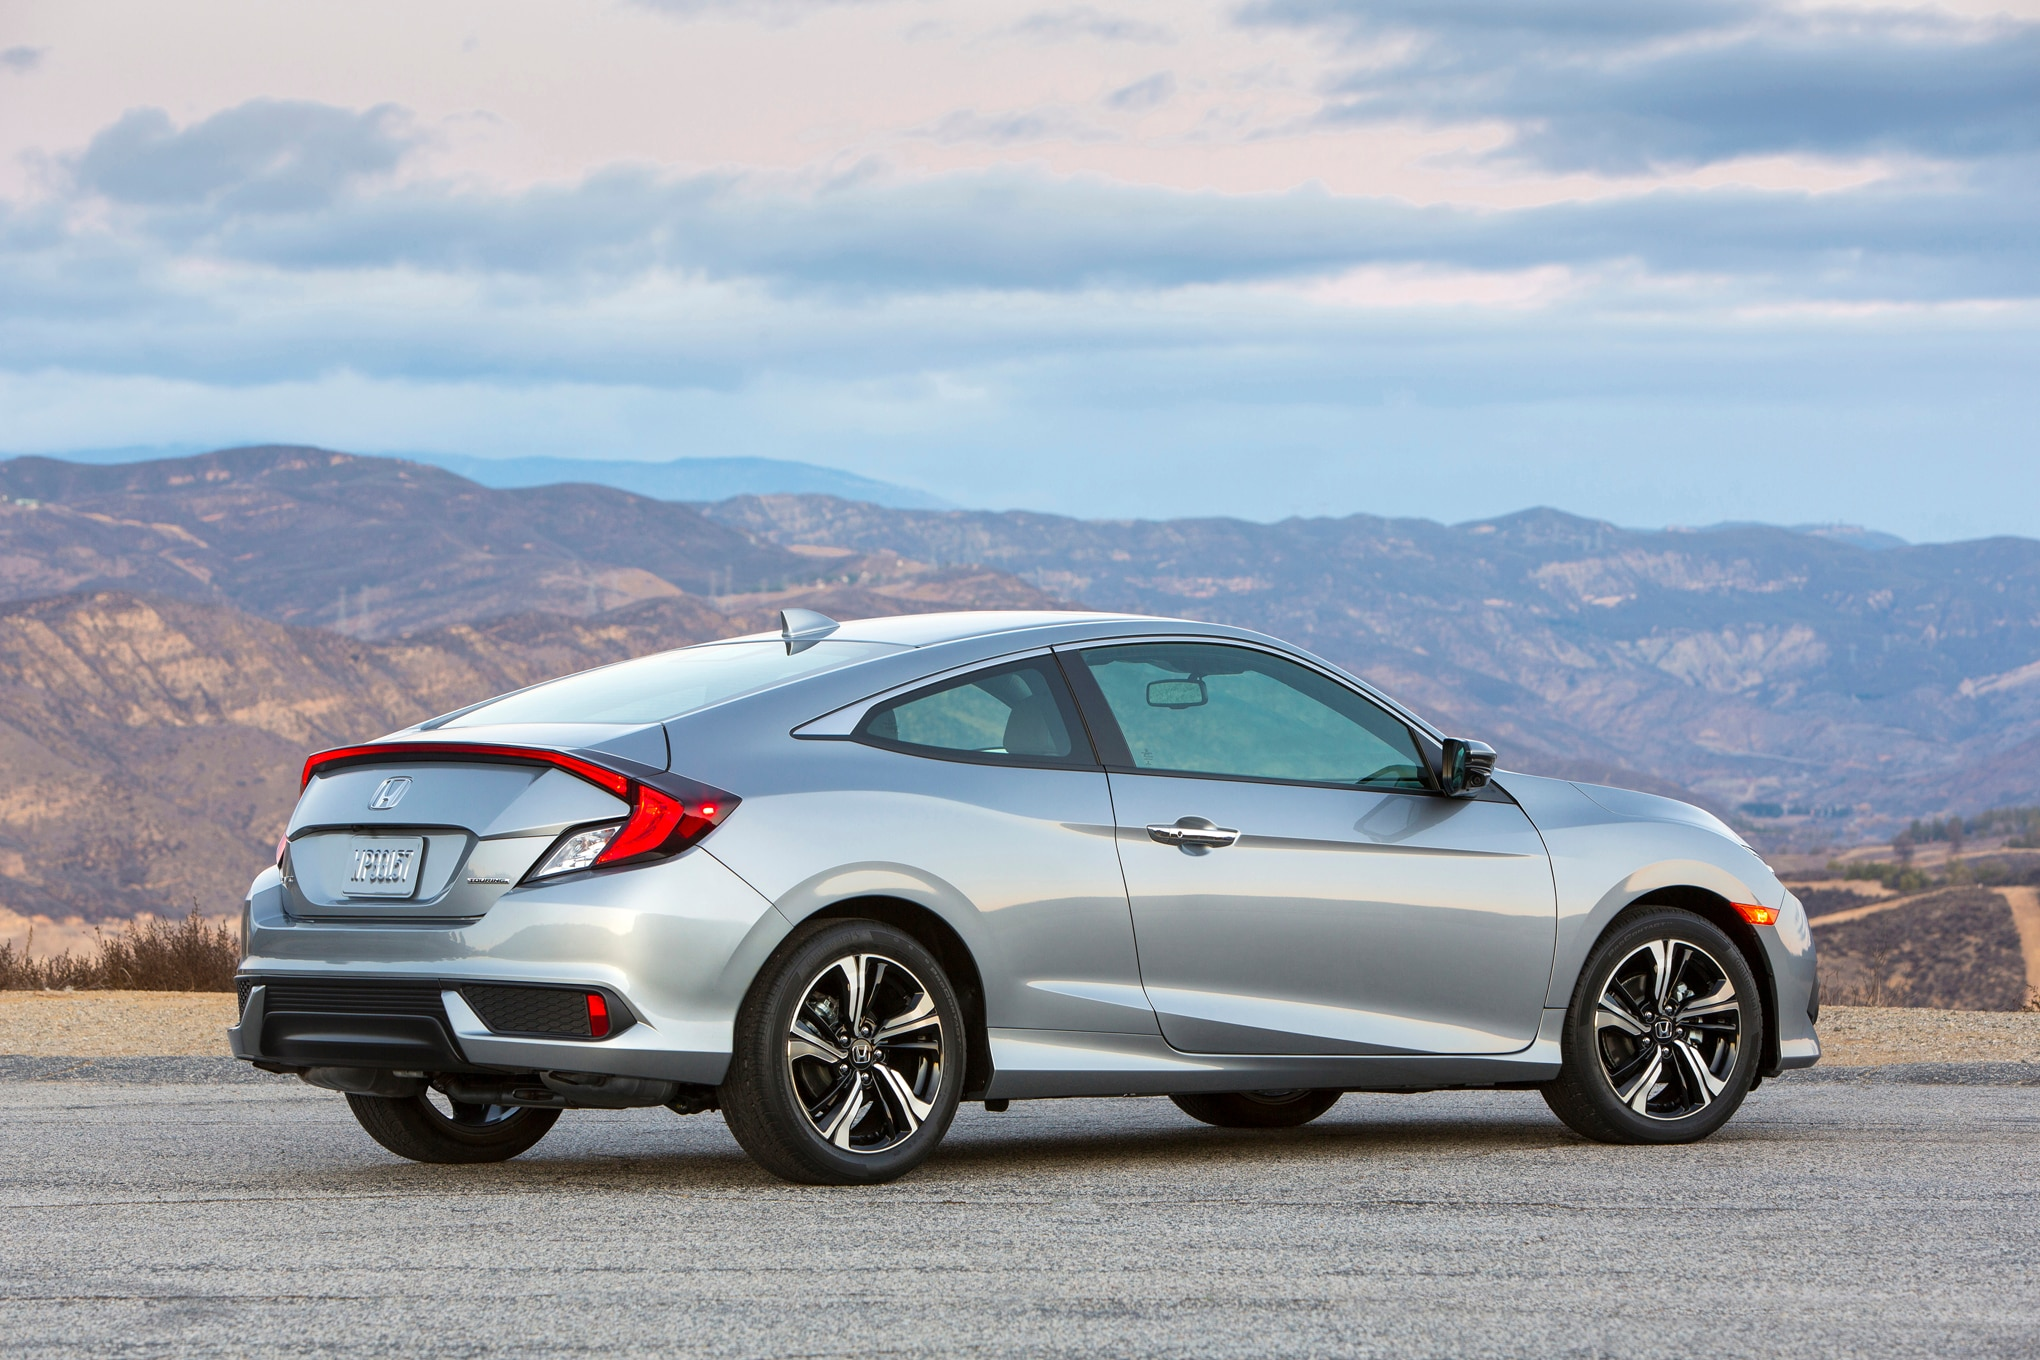 One week with 2016 honda civic coupe touring autoz for 2016 honda civic ex t review